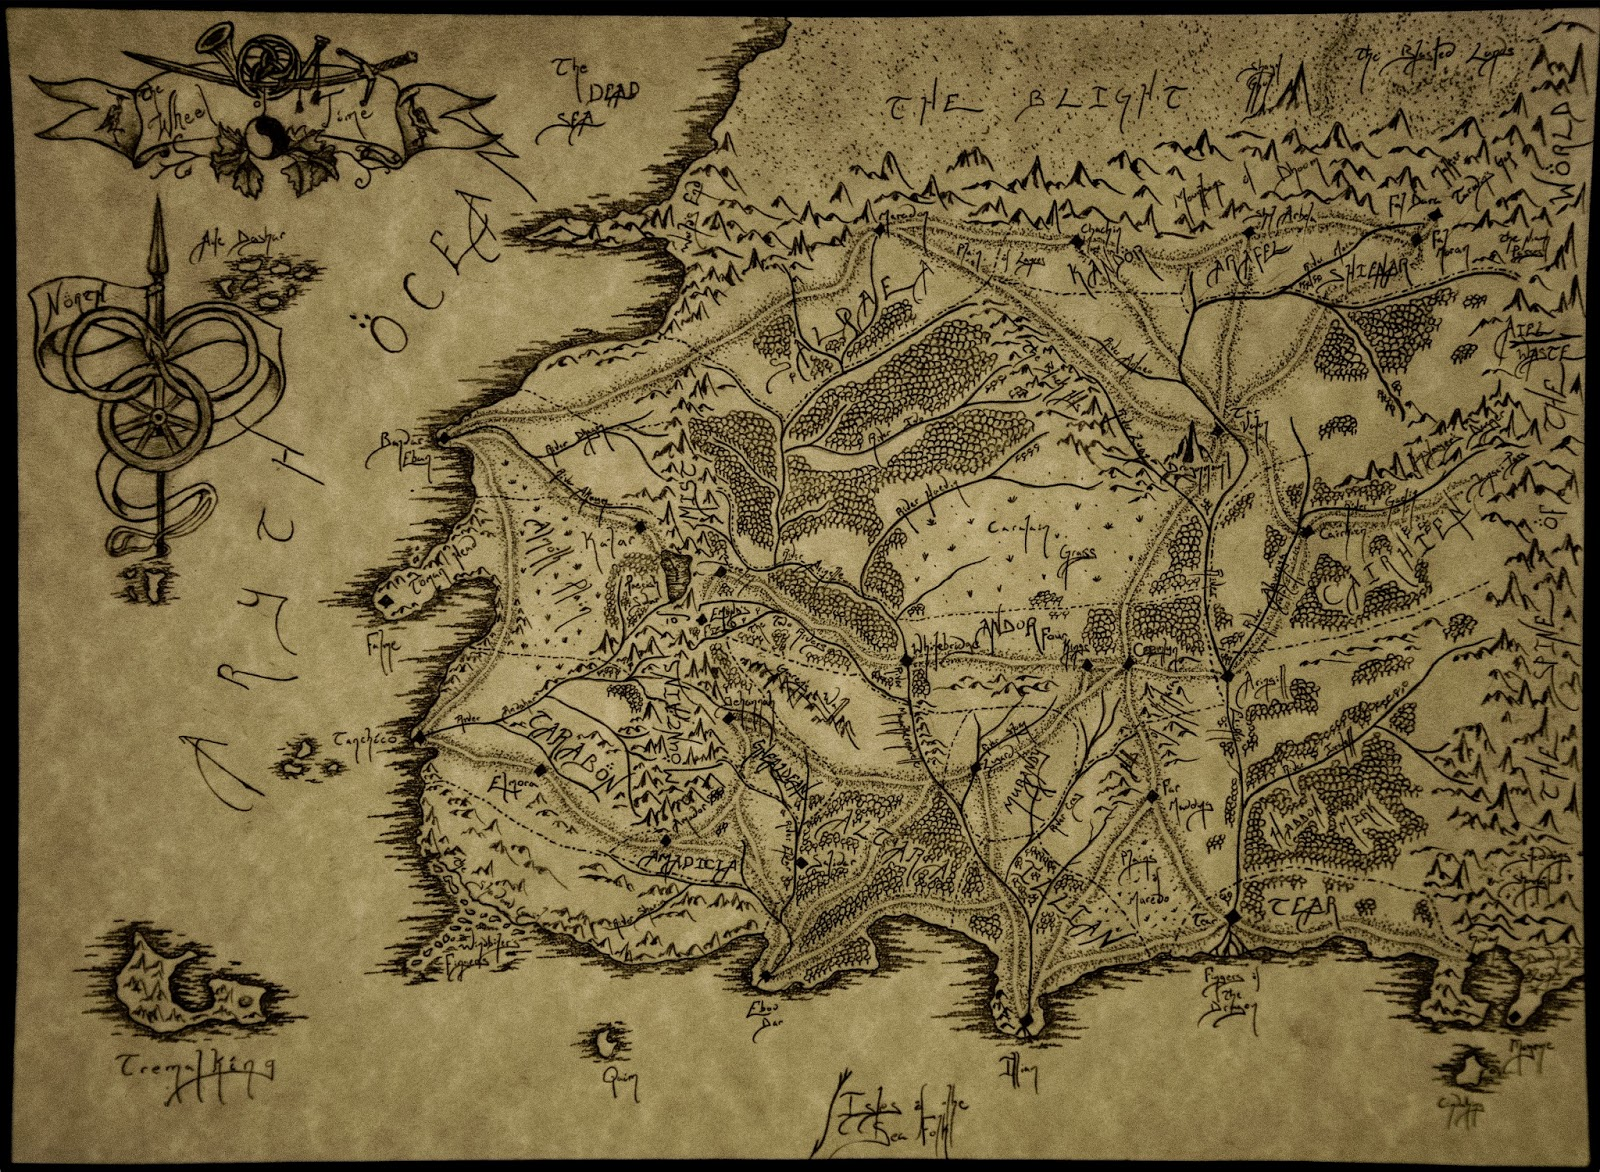 Shards of the Dark Age: Cartography- A Tribute to Robert Jordan